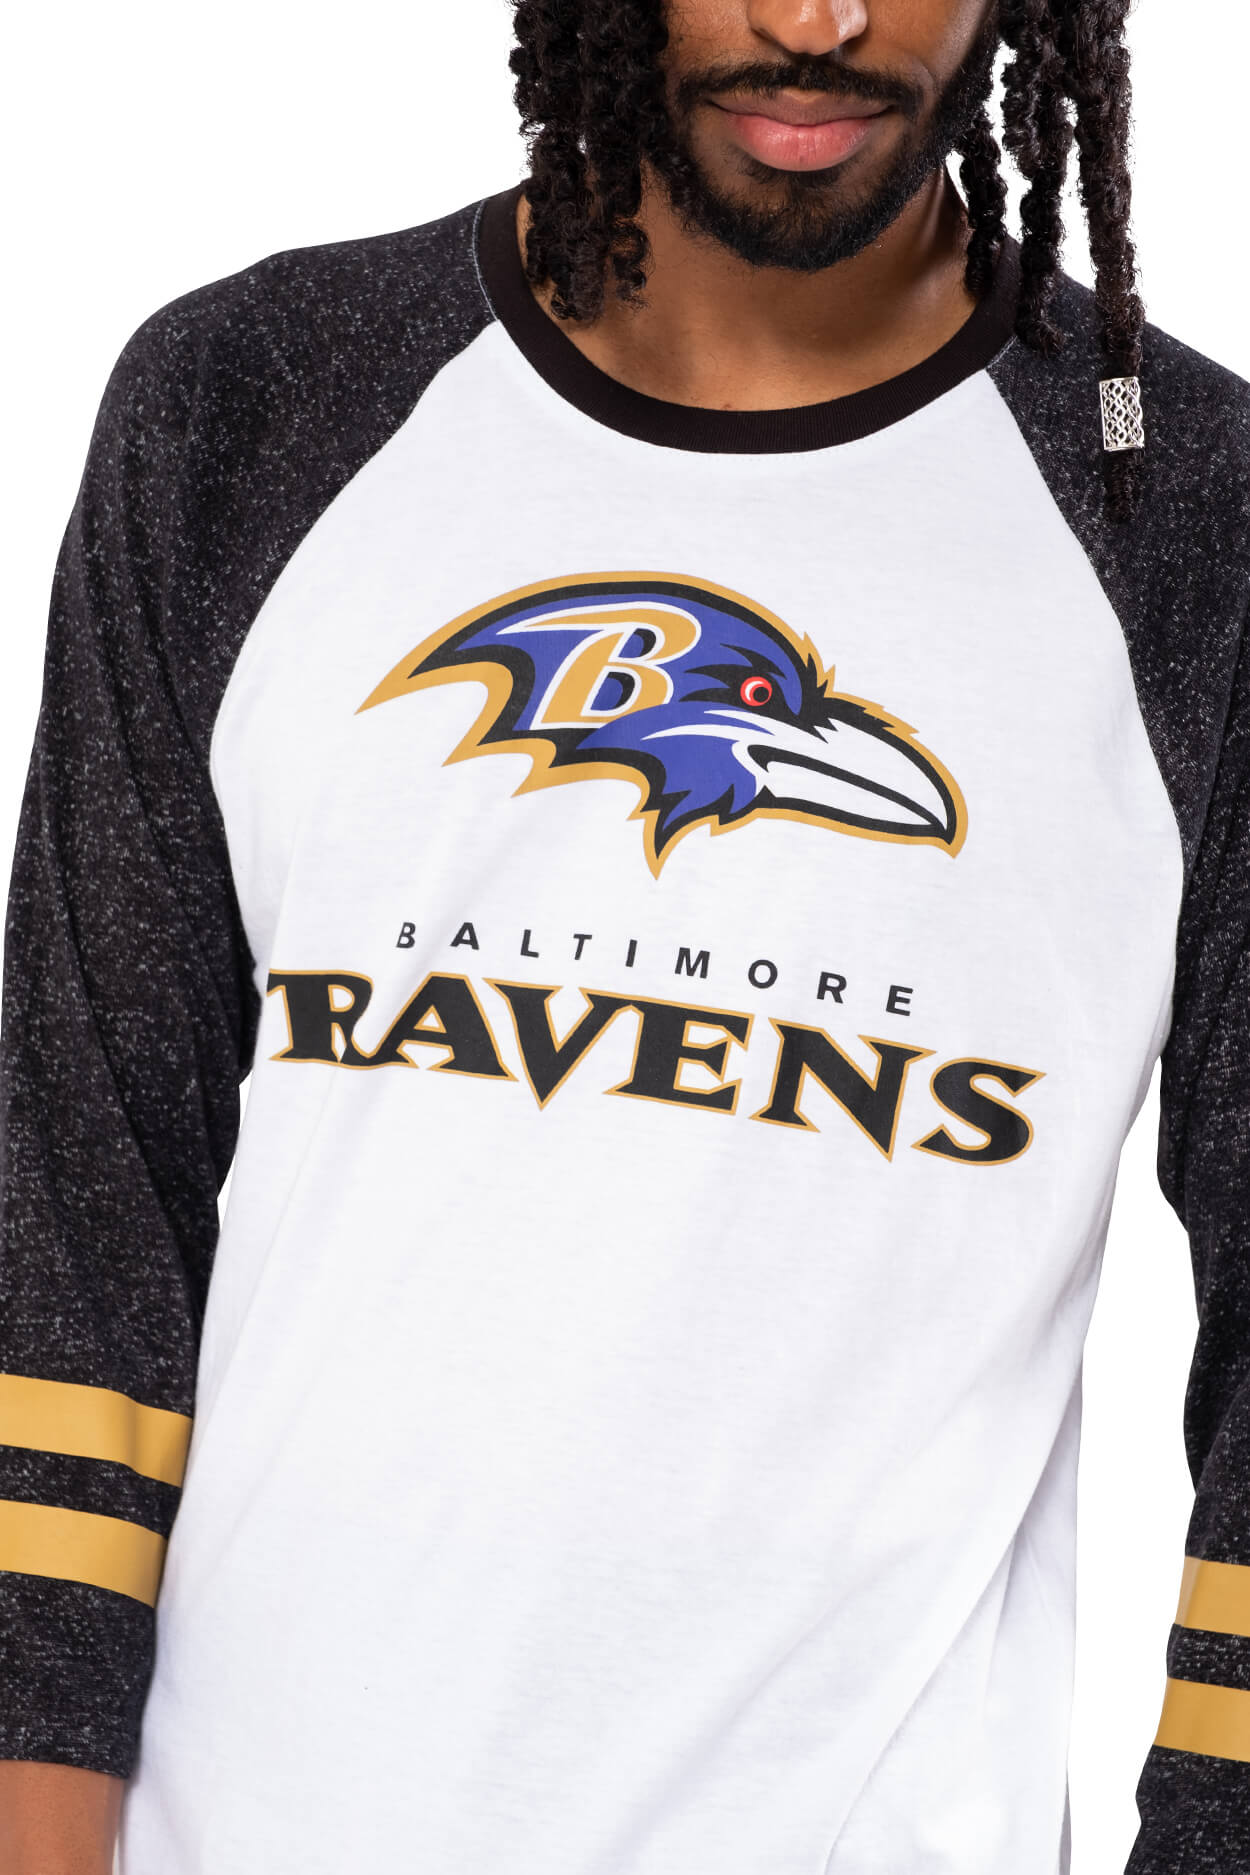 NFL Baltimore Ravens Men's Baseball Tee|Baltimore Ravens